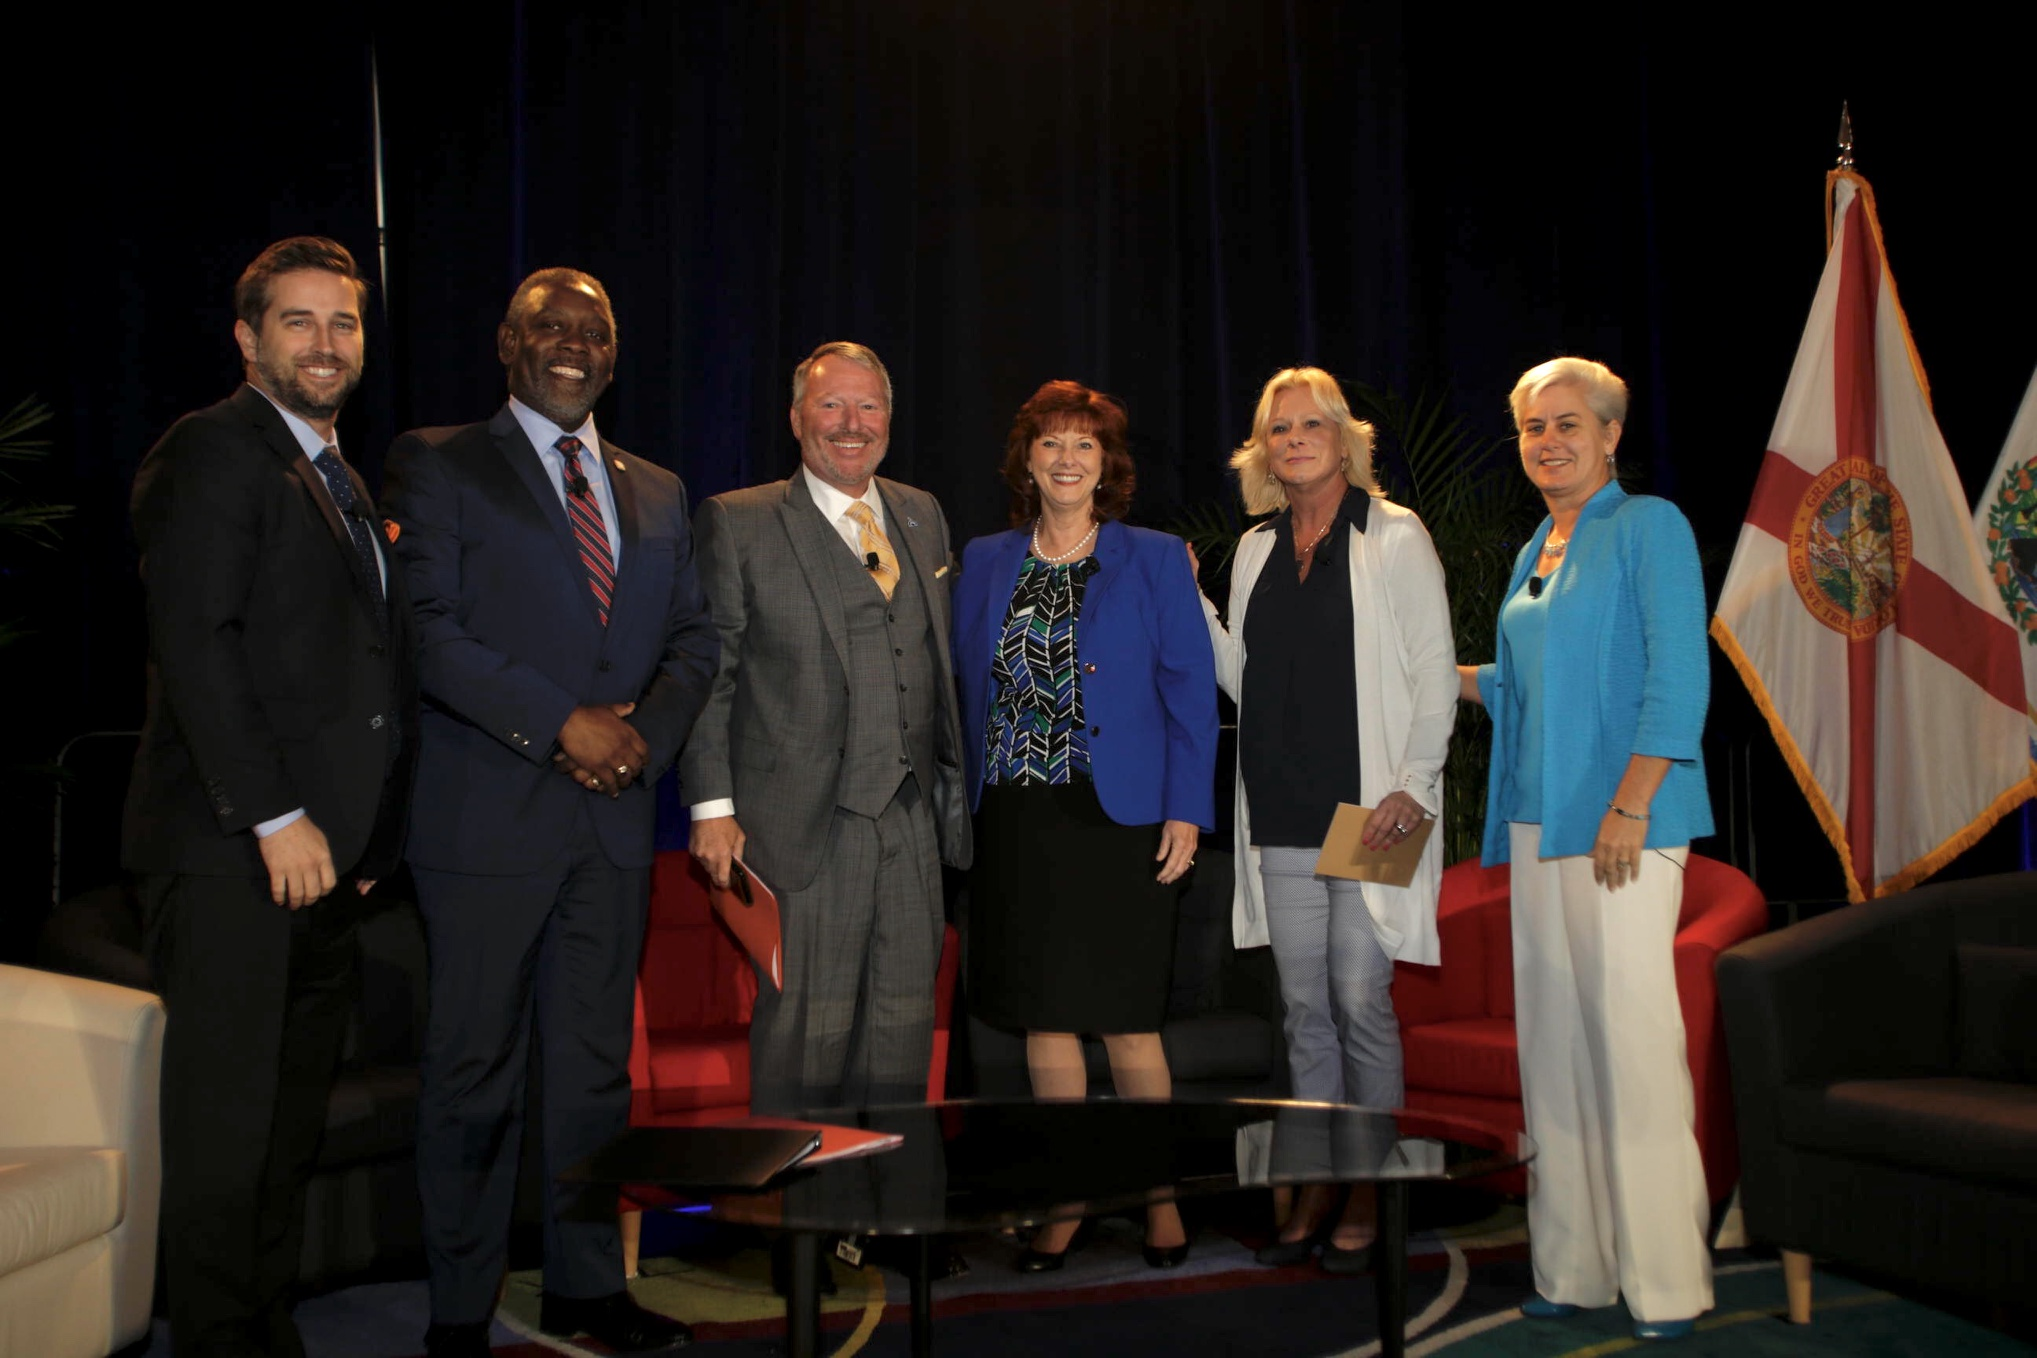 A panel, Regional Topics and Vision, is on stage. It consists of Tim Giuliani, Mayor Demings, Mayor Dyer, Chair Campione, Chair Carey, and Chair Grieb. They are on stage sitting in a semi circle around a table, with the state and county flags in the background.